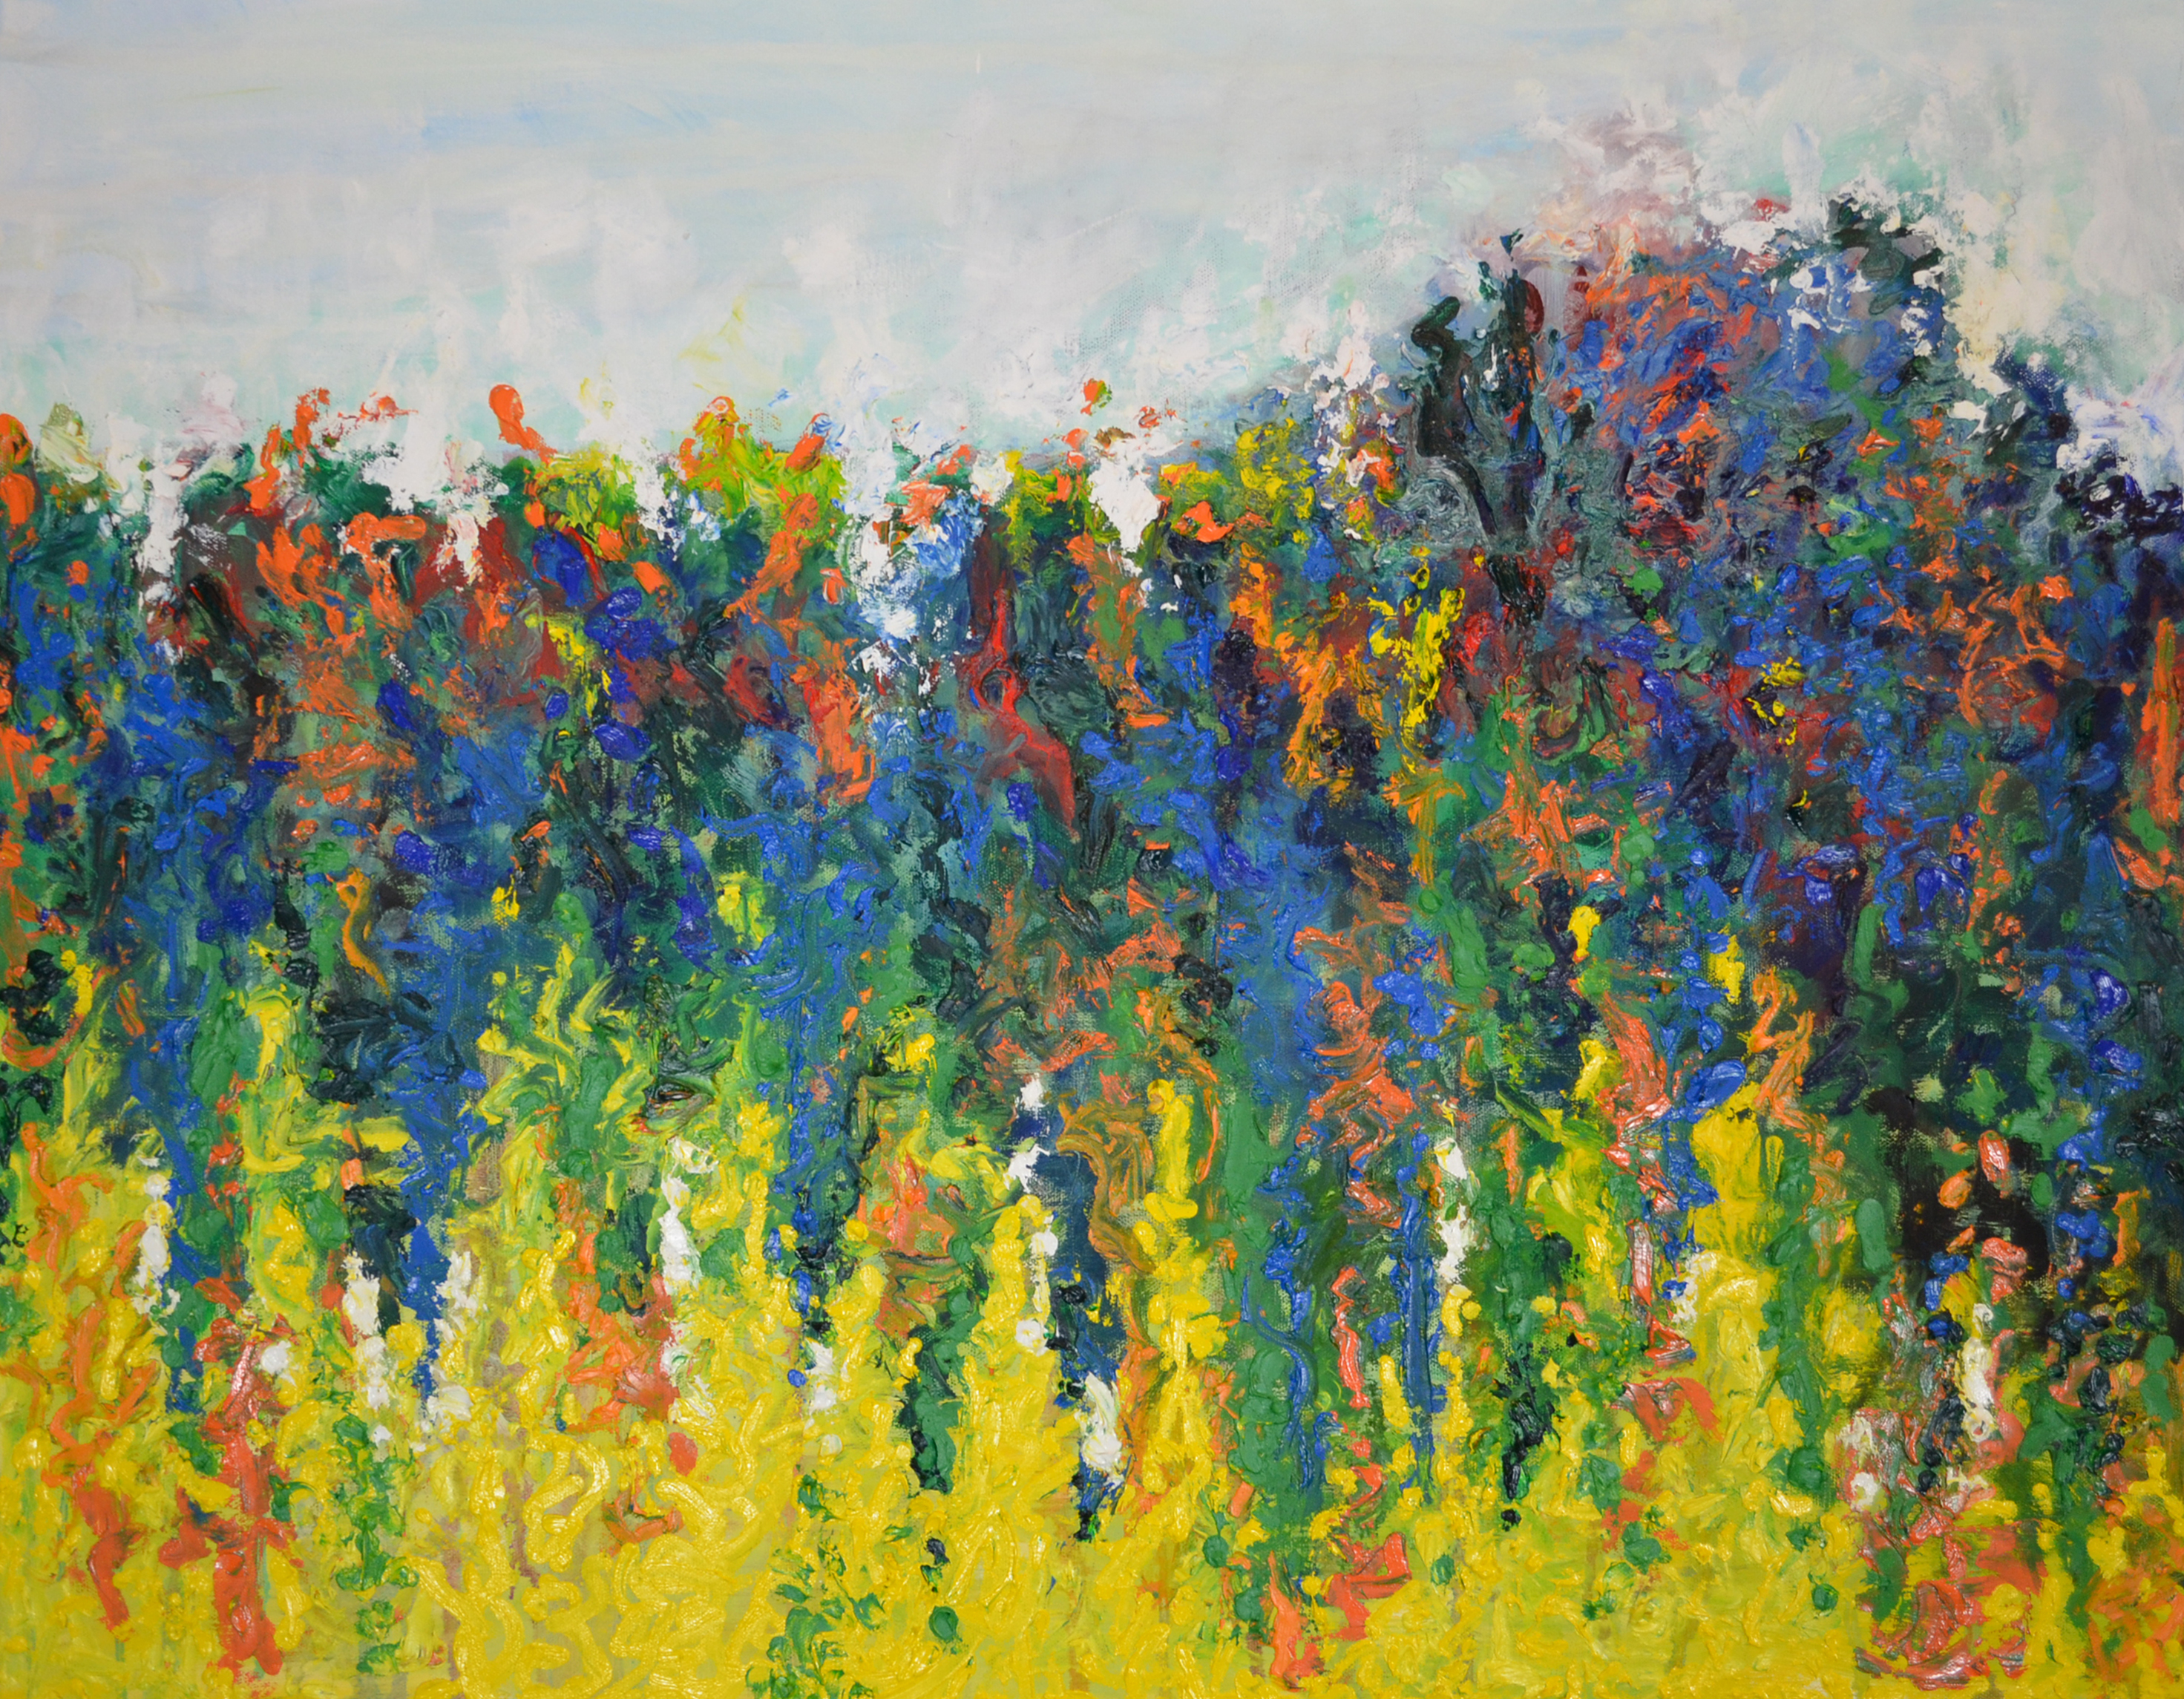 Dancing in Full Color, an oil on canvas by Dale Sprague